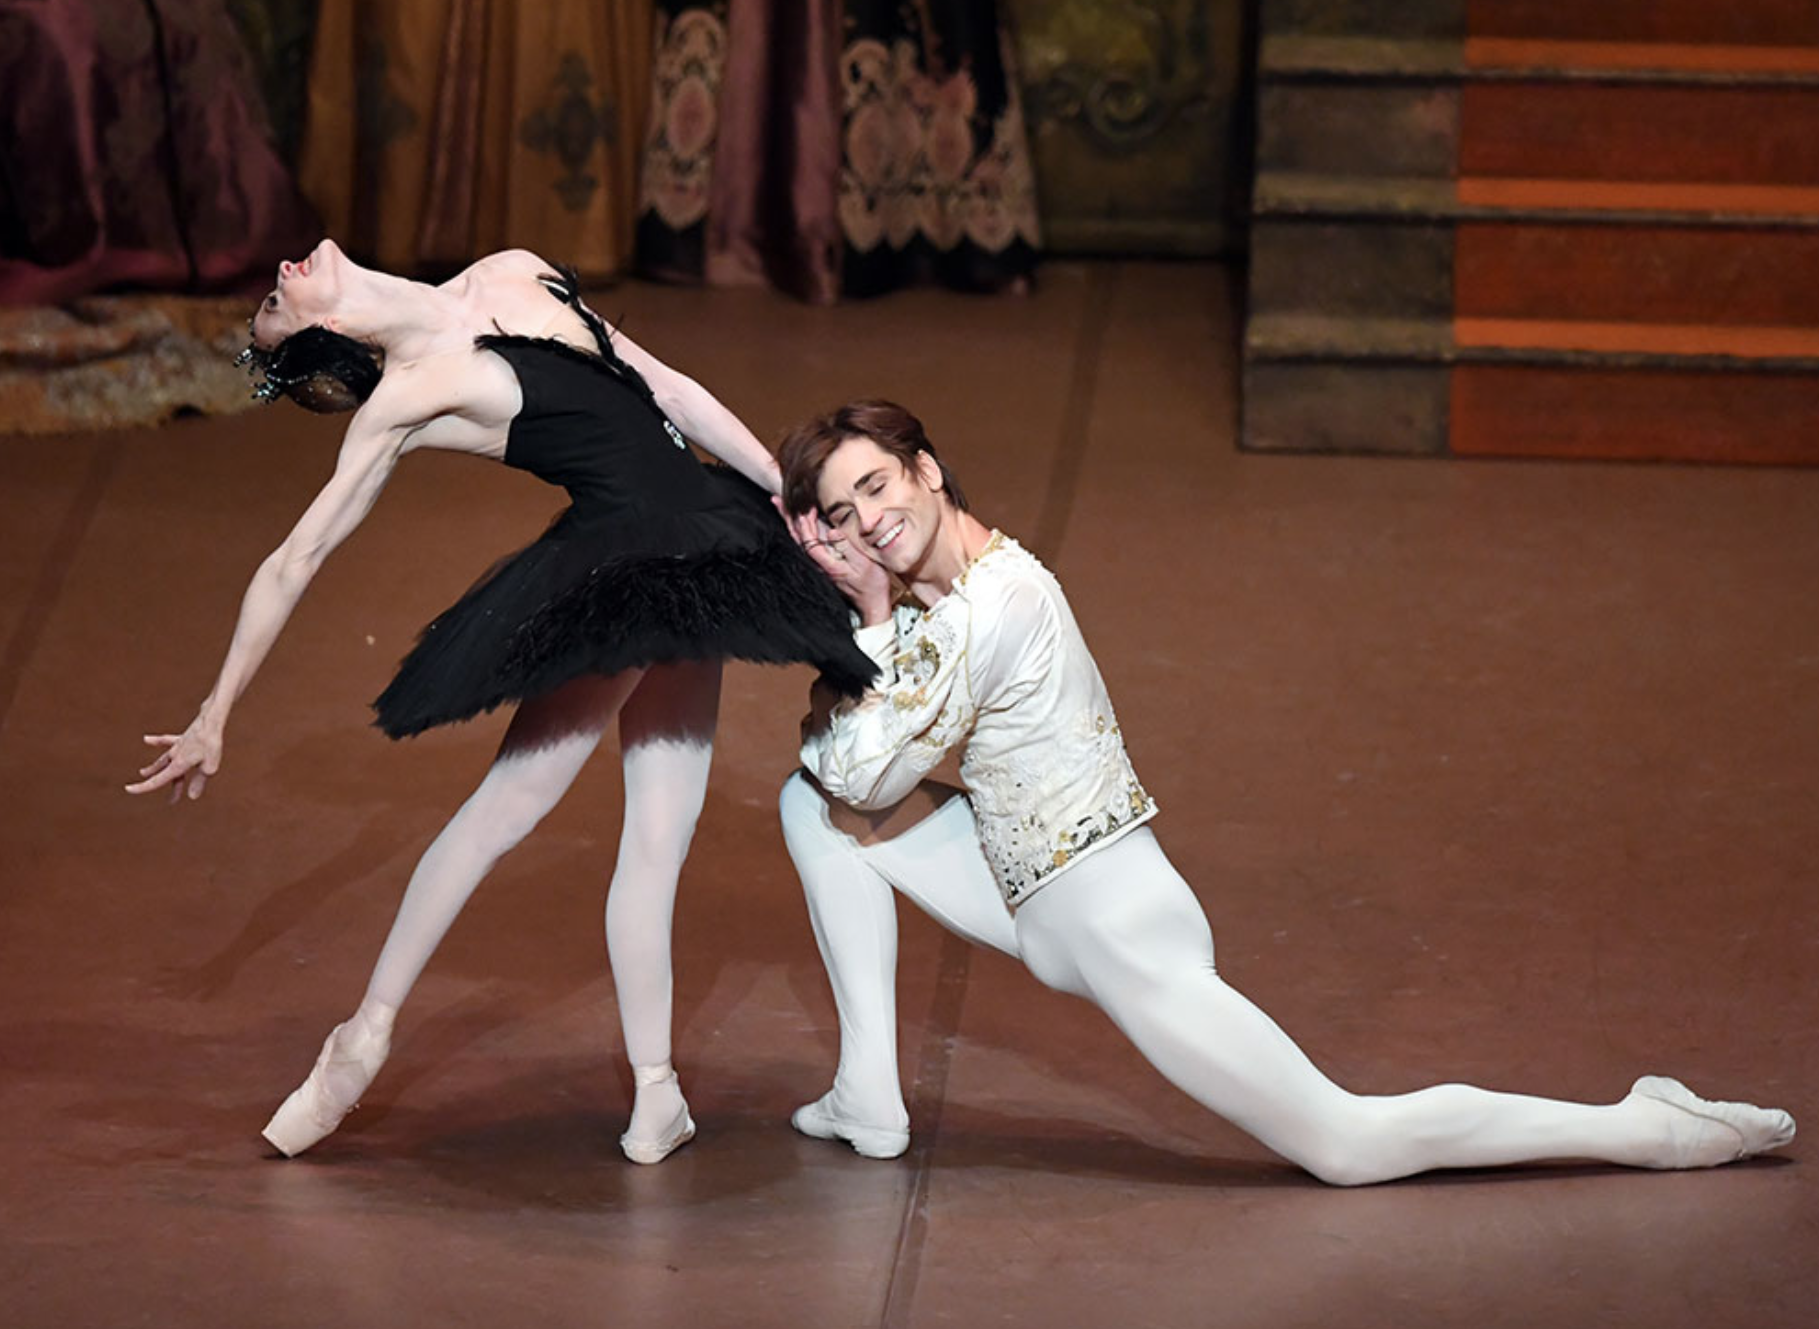 Alicia Amatriain and Friedemann Vogel Swan Lake John Cranko (c) Stuttgart Ballet